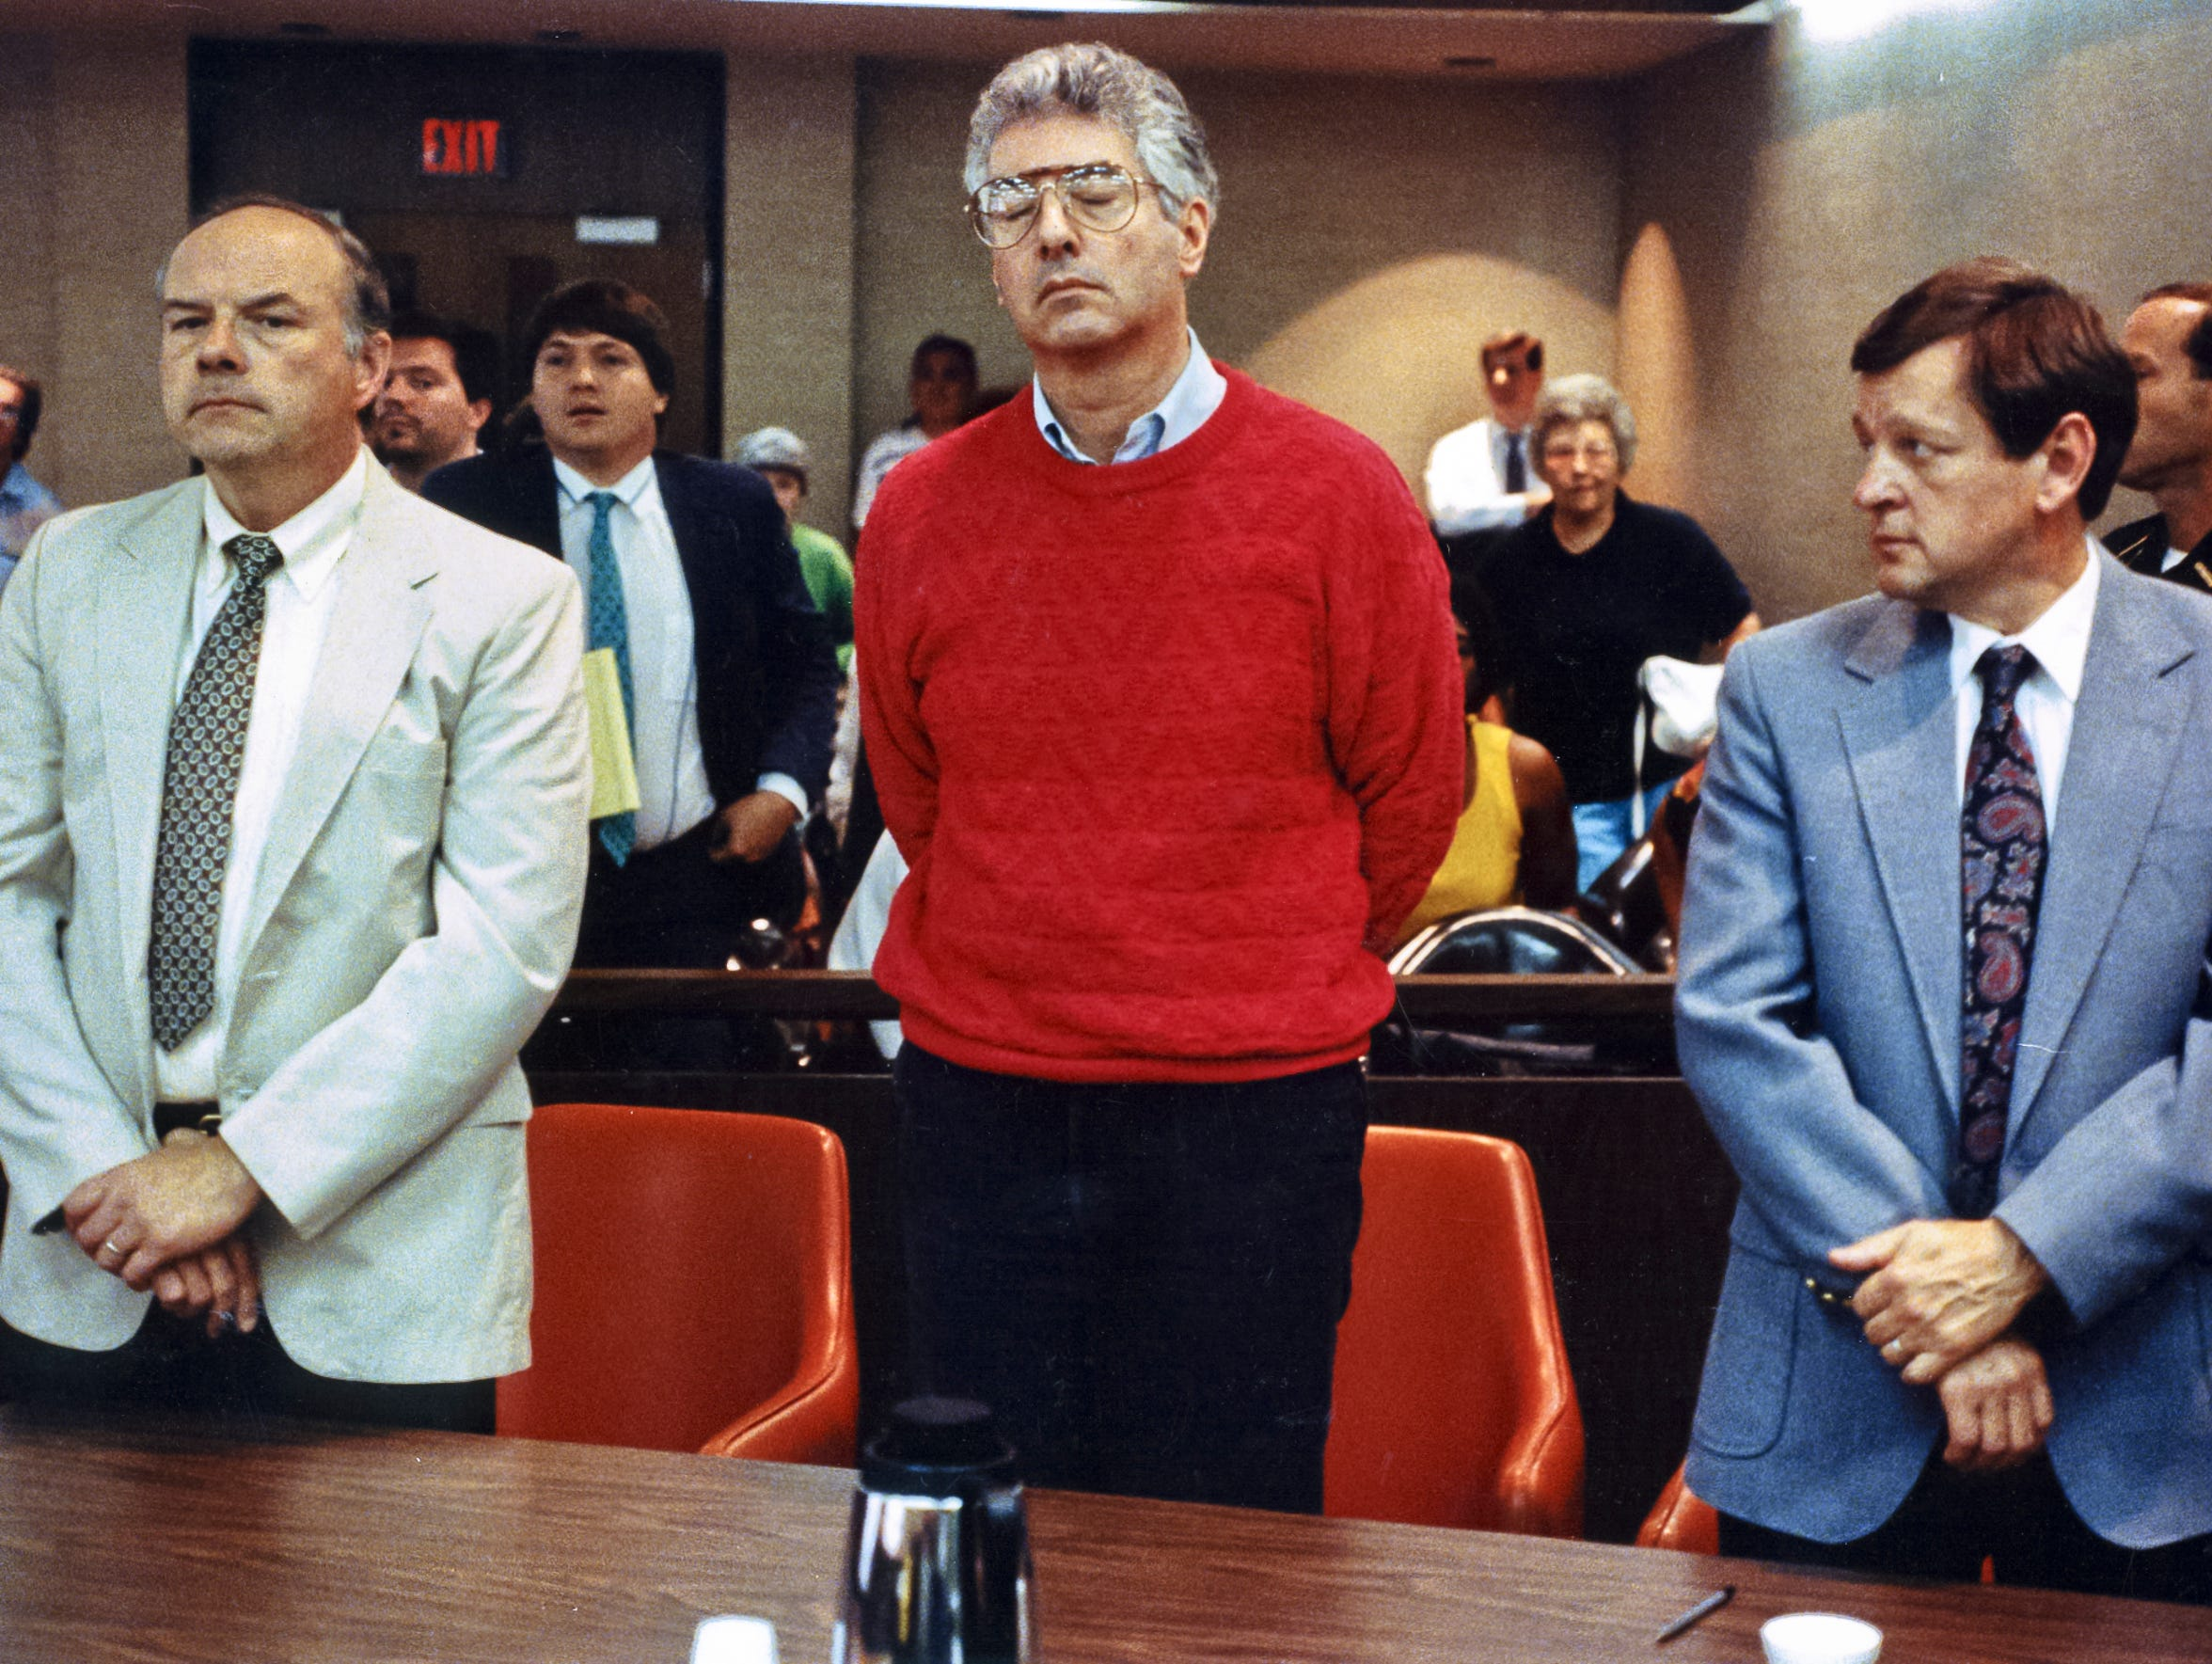 Dr. John F. Boyle, pictured here during his trial,